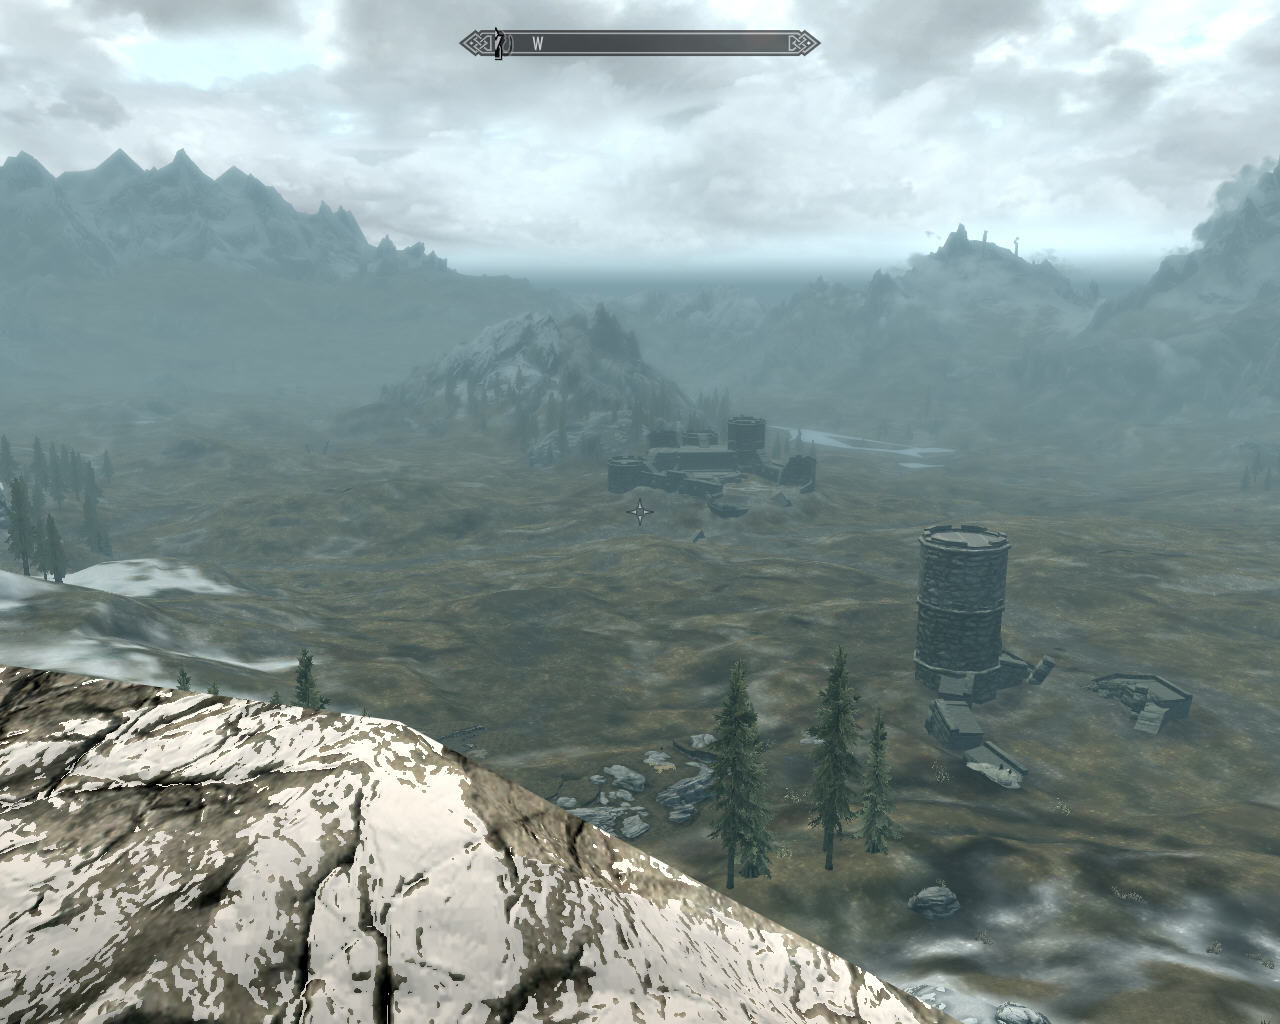 The Elder Scrolls V: Skyrim Windows Virtual tourism continues - now in Skyrim!